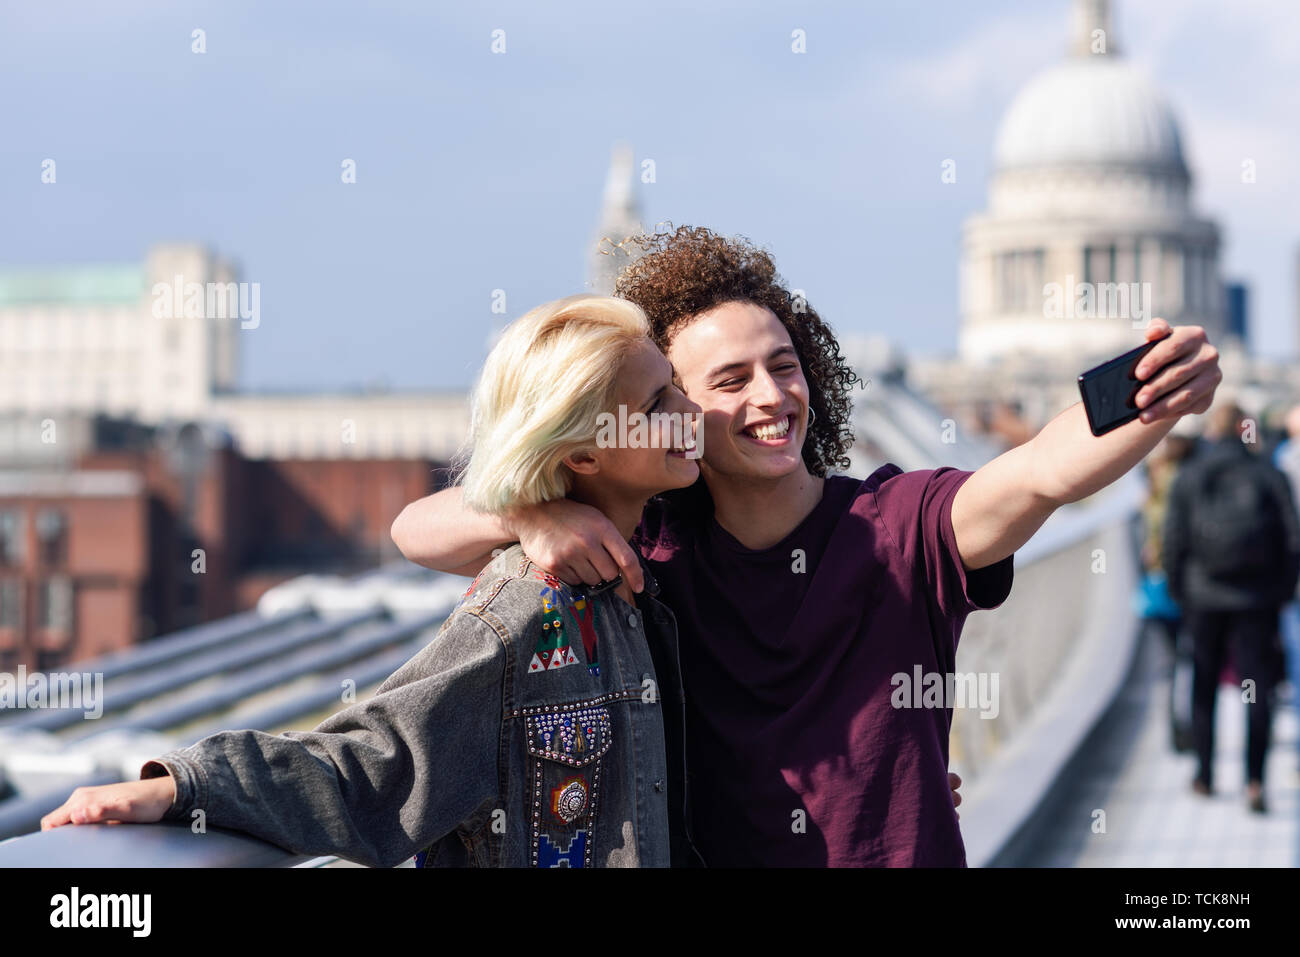 Happy couple taking a selfie photograph on London's Millennium Bridge - Stock Image